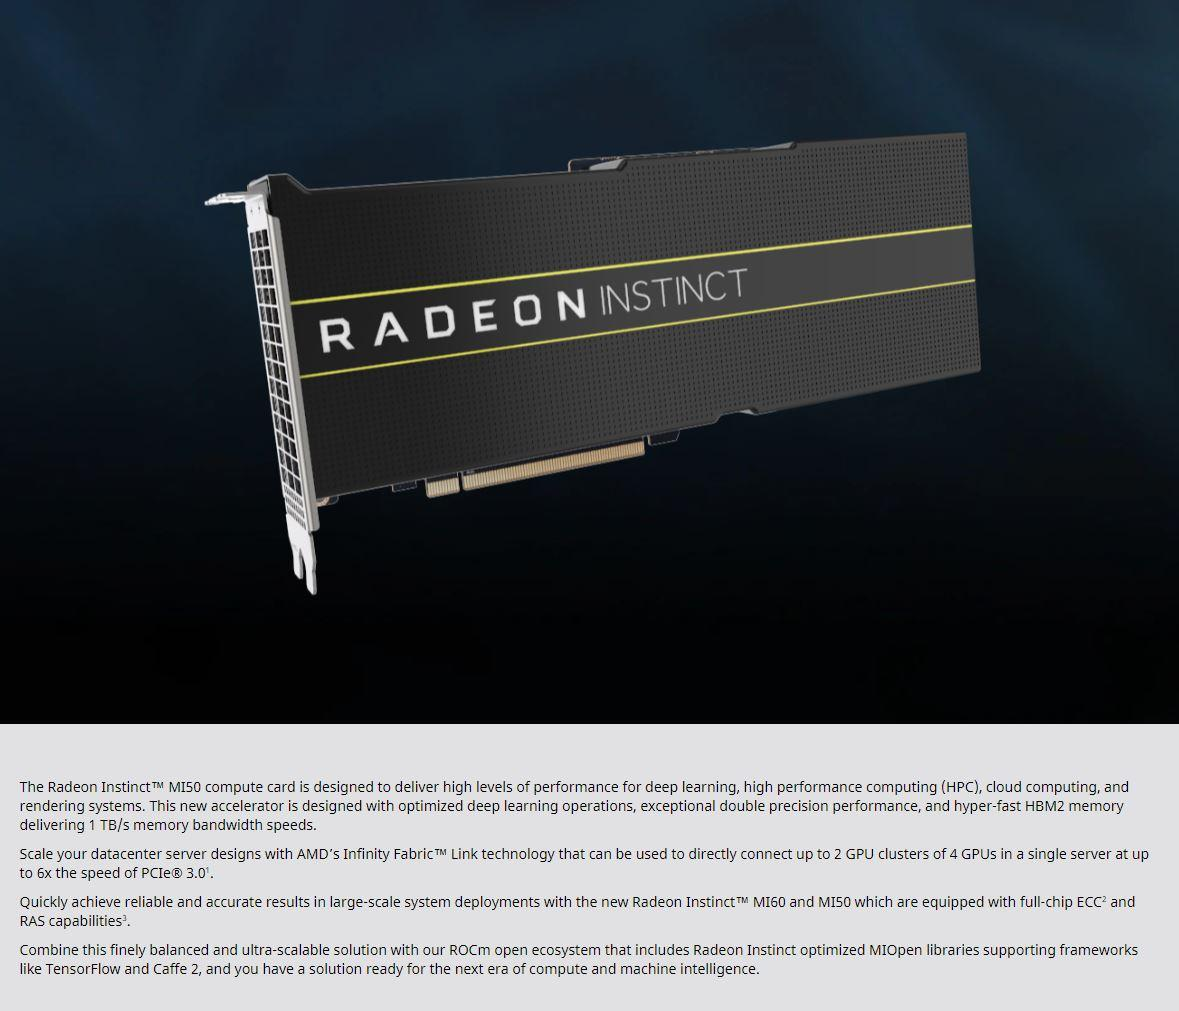 AMD's CEO and CTO on Radeon VII, ray tracing and beyond - General